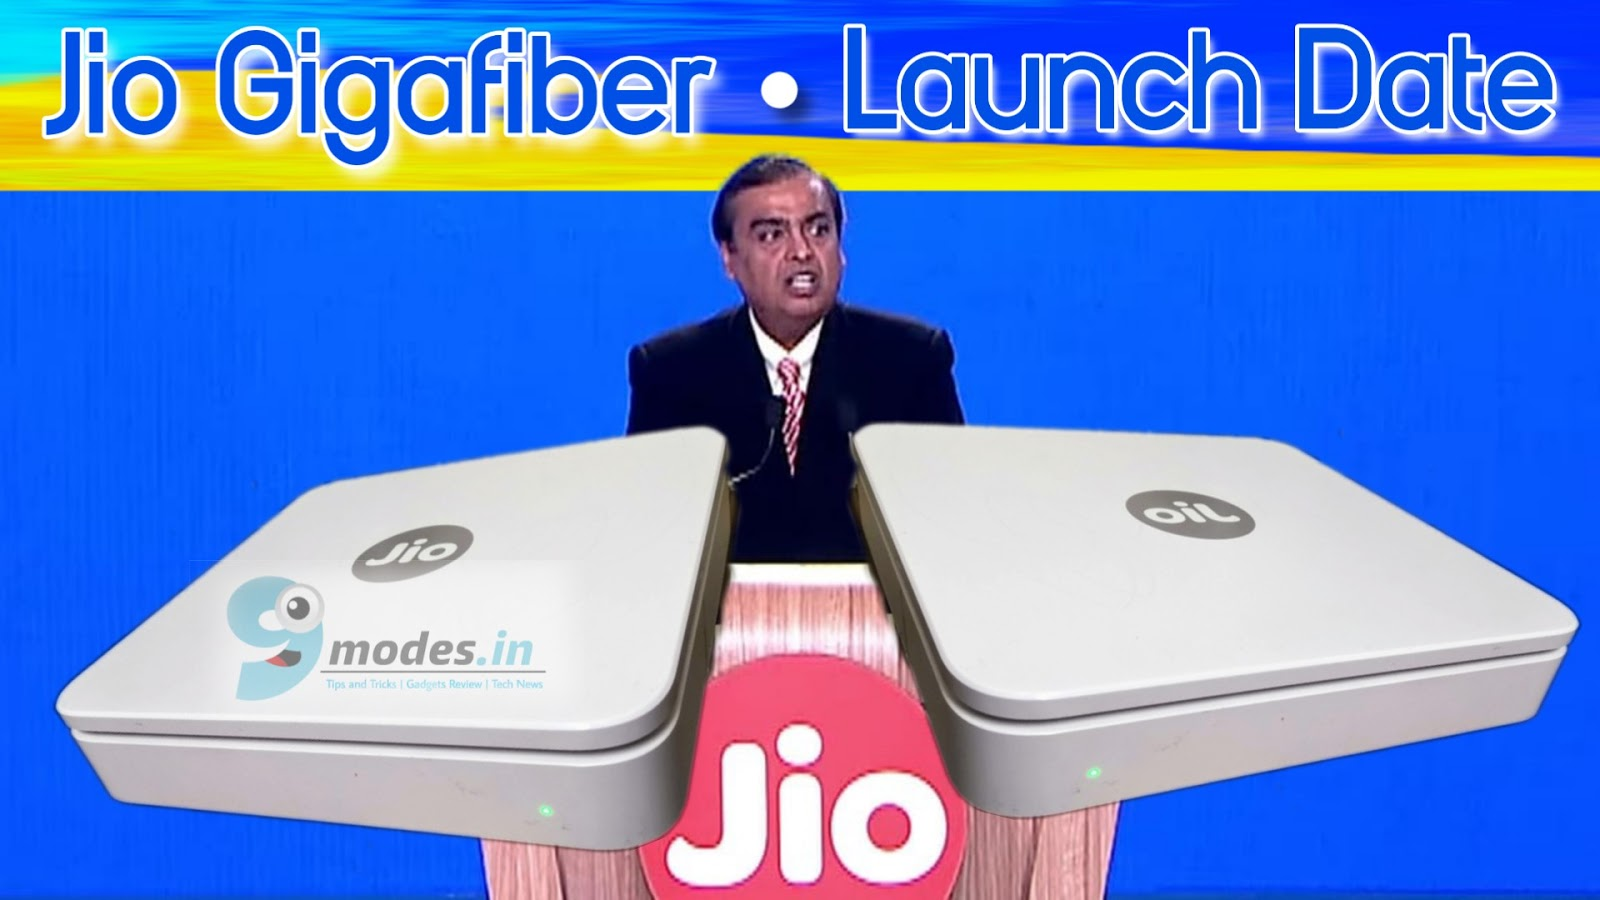 Jio gigafiber plans and price